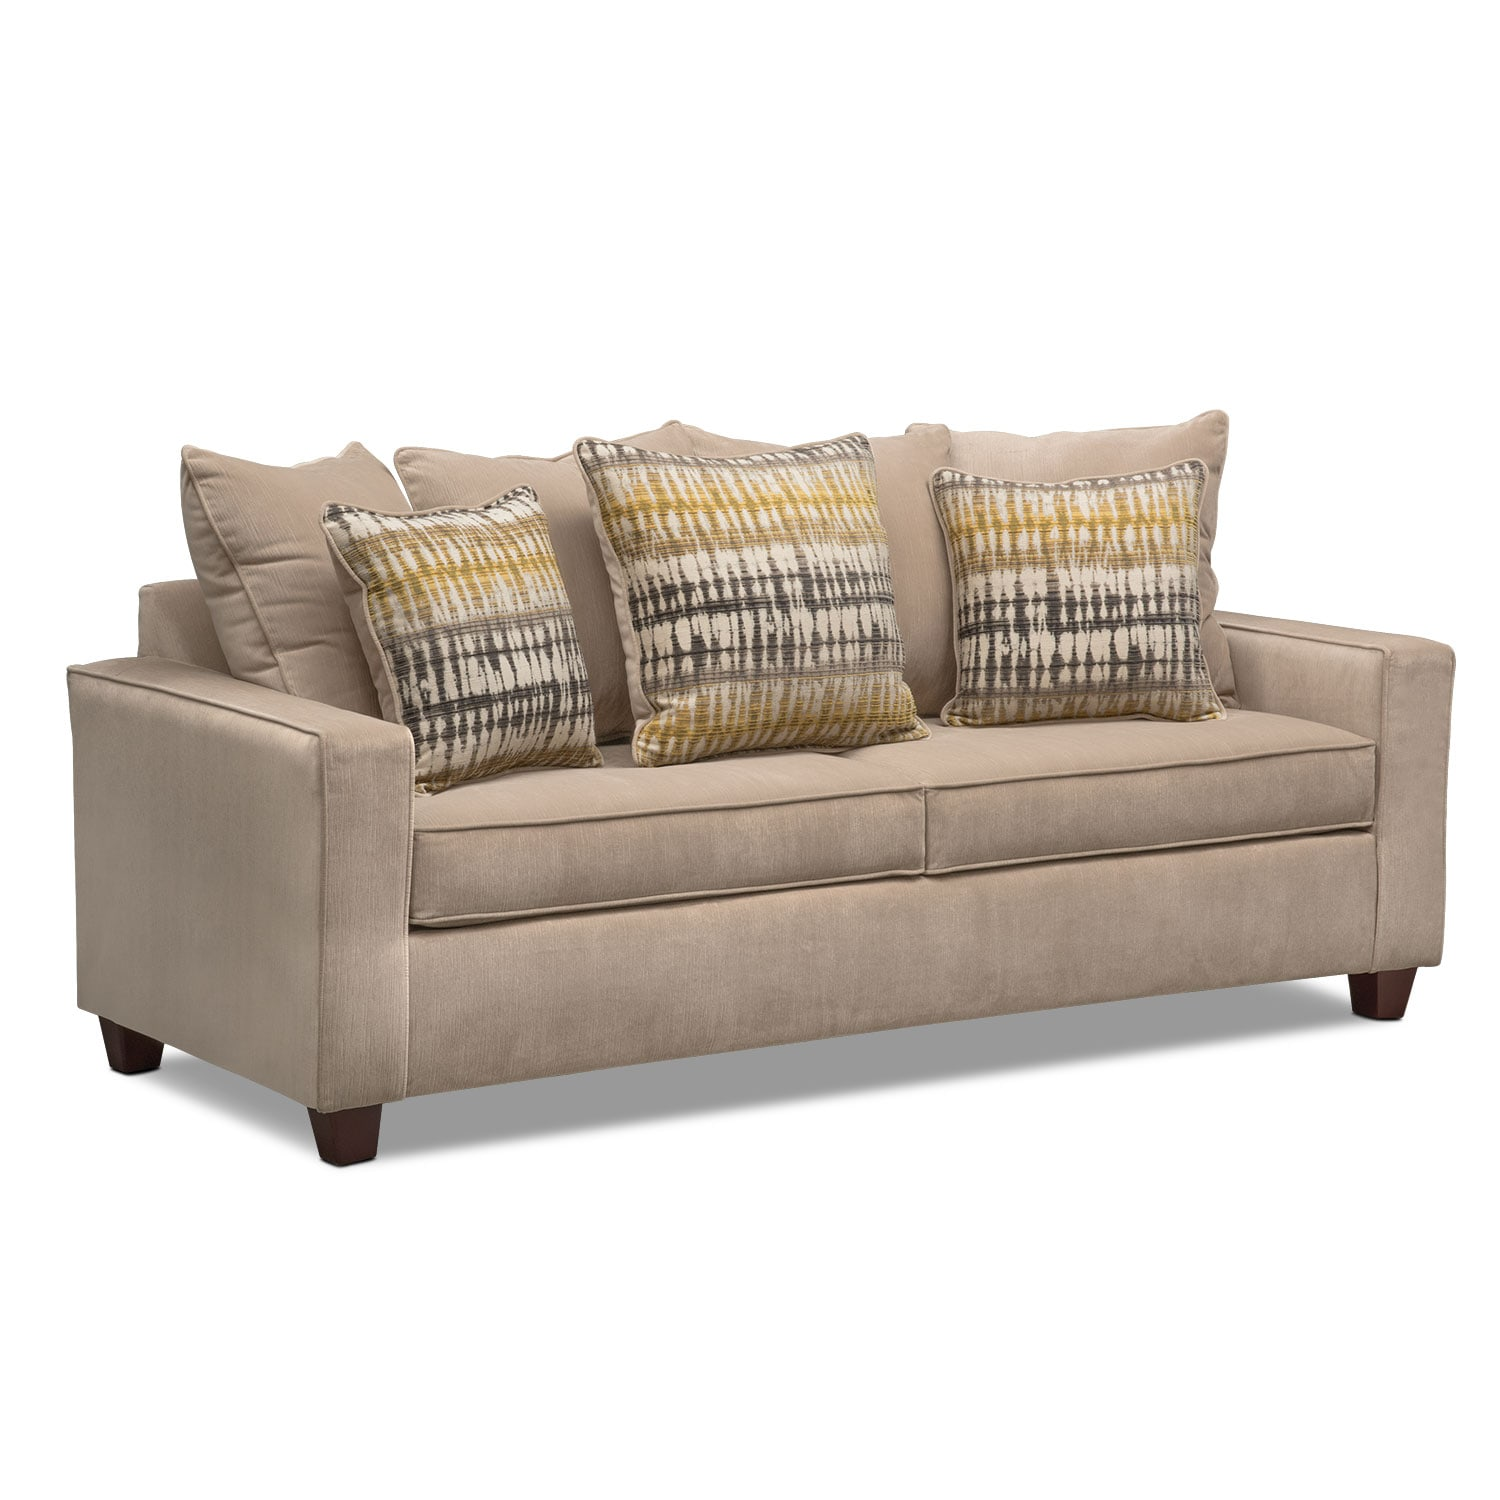 Bryden Sofa And Loveseat Set - Beige By Factory Outlet